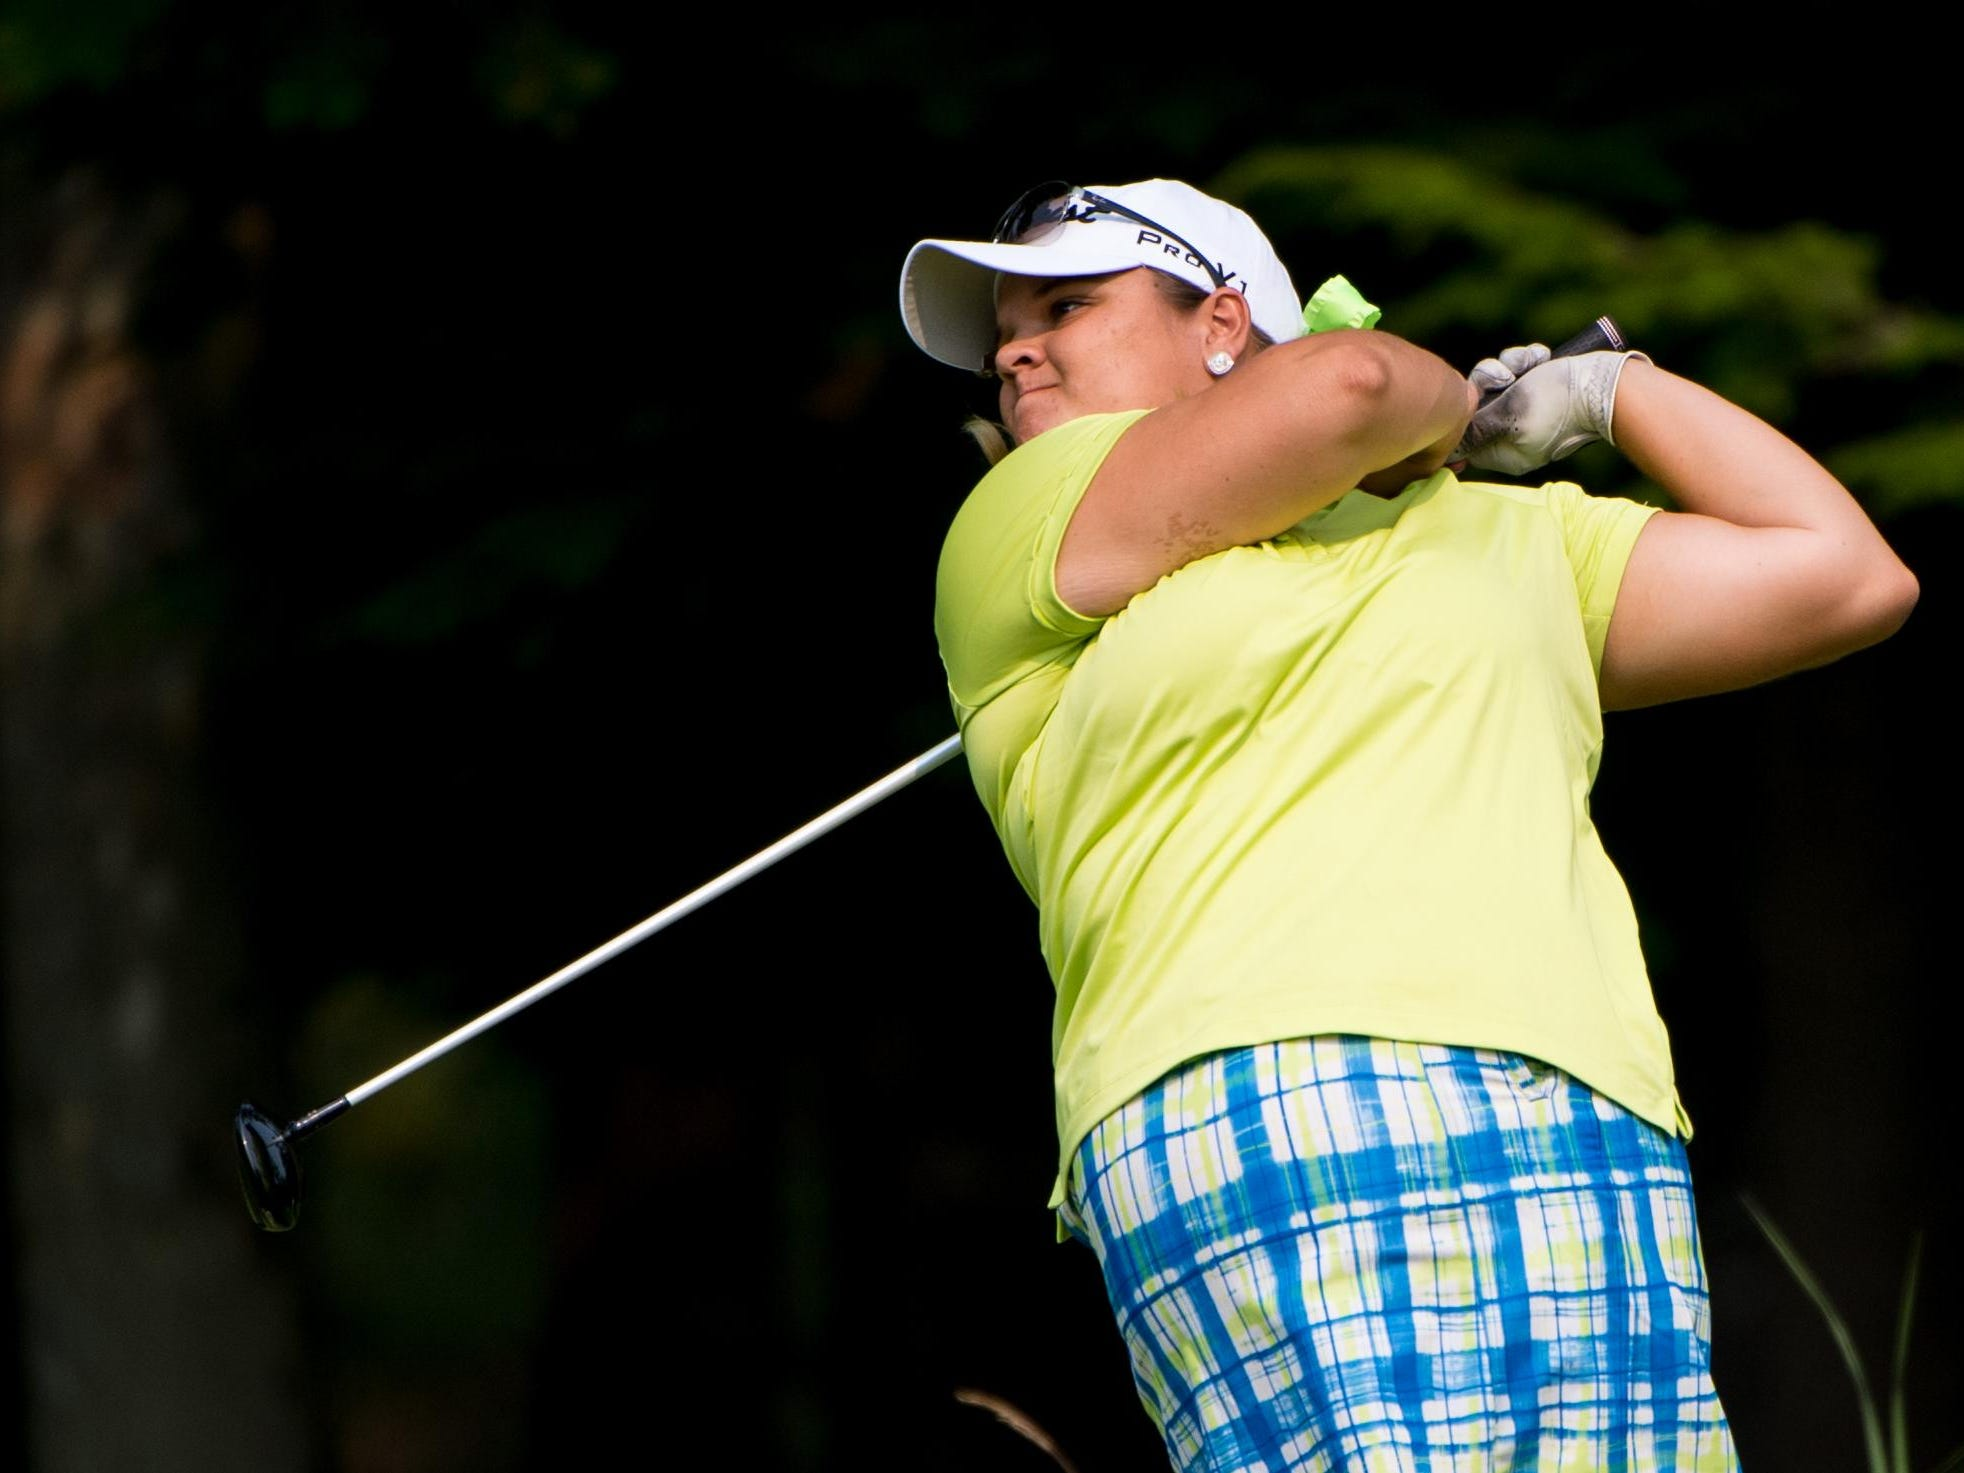 DeWitt's Liz Nagel will compete in this week's U.S. Women's Open in Lancaster, Pa. The event will mark her second on the LPGA Tour and first career major.